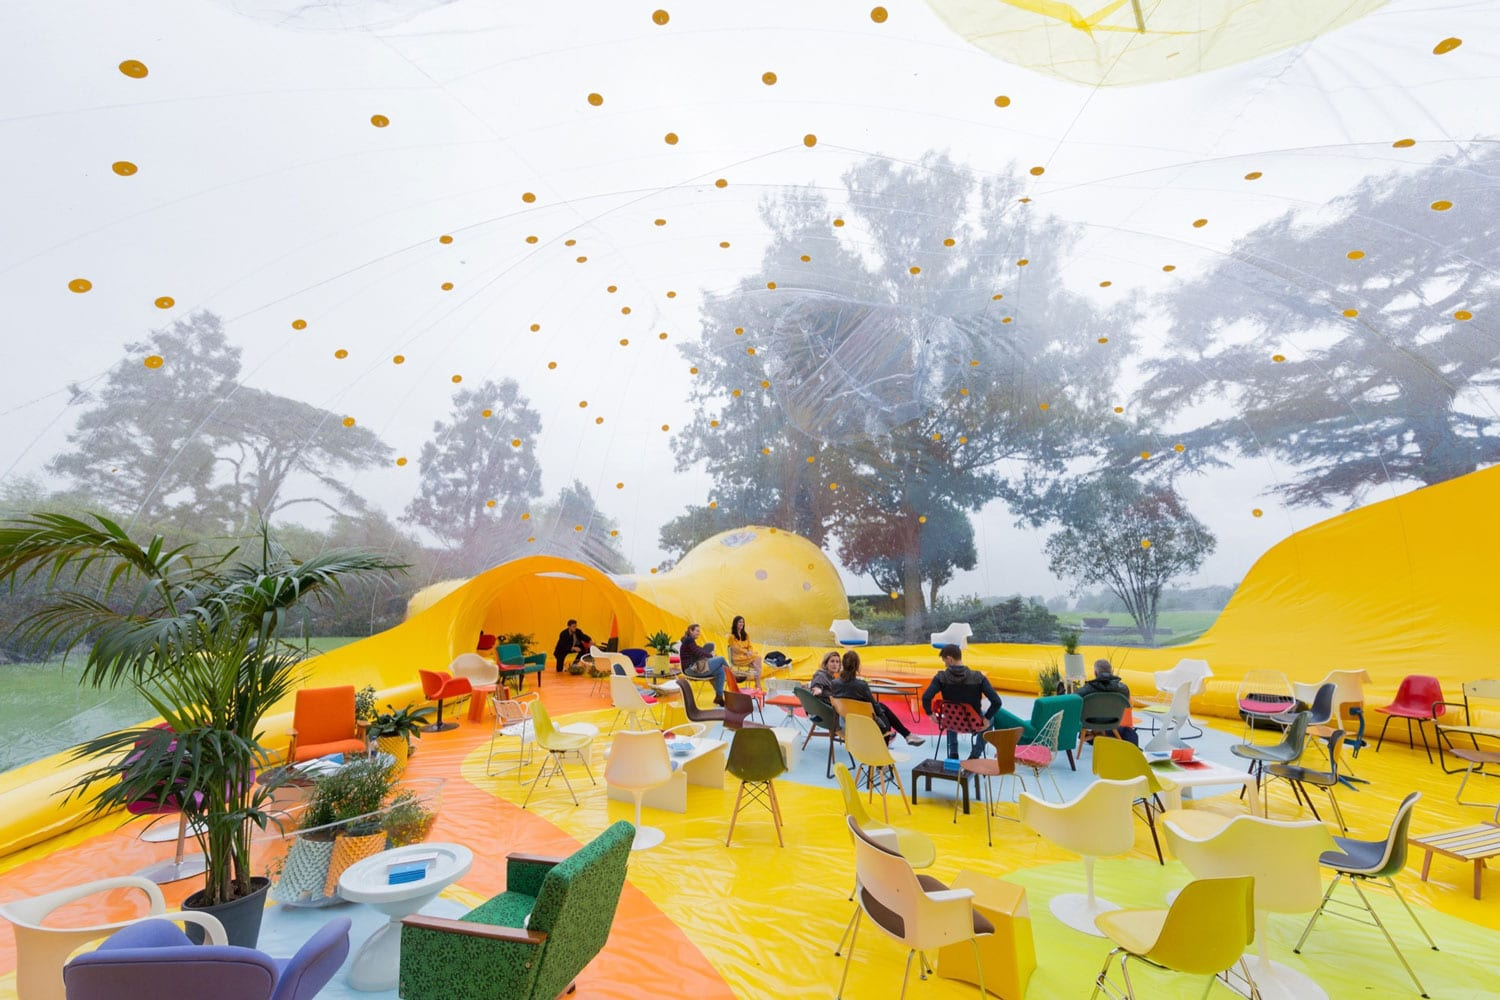 Second Dome by DOSIS   Yellowtrace